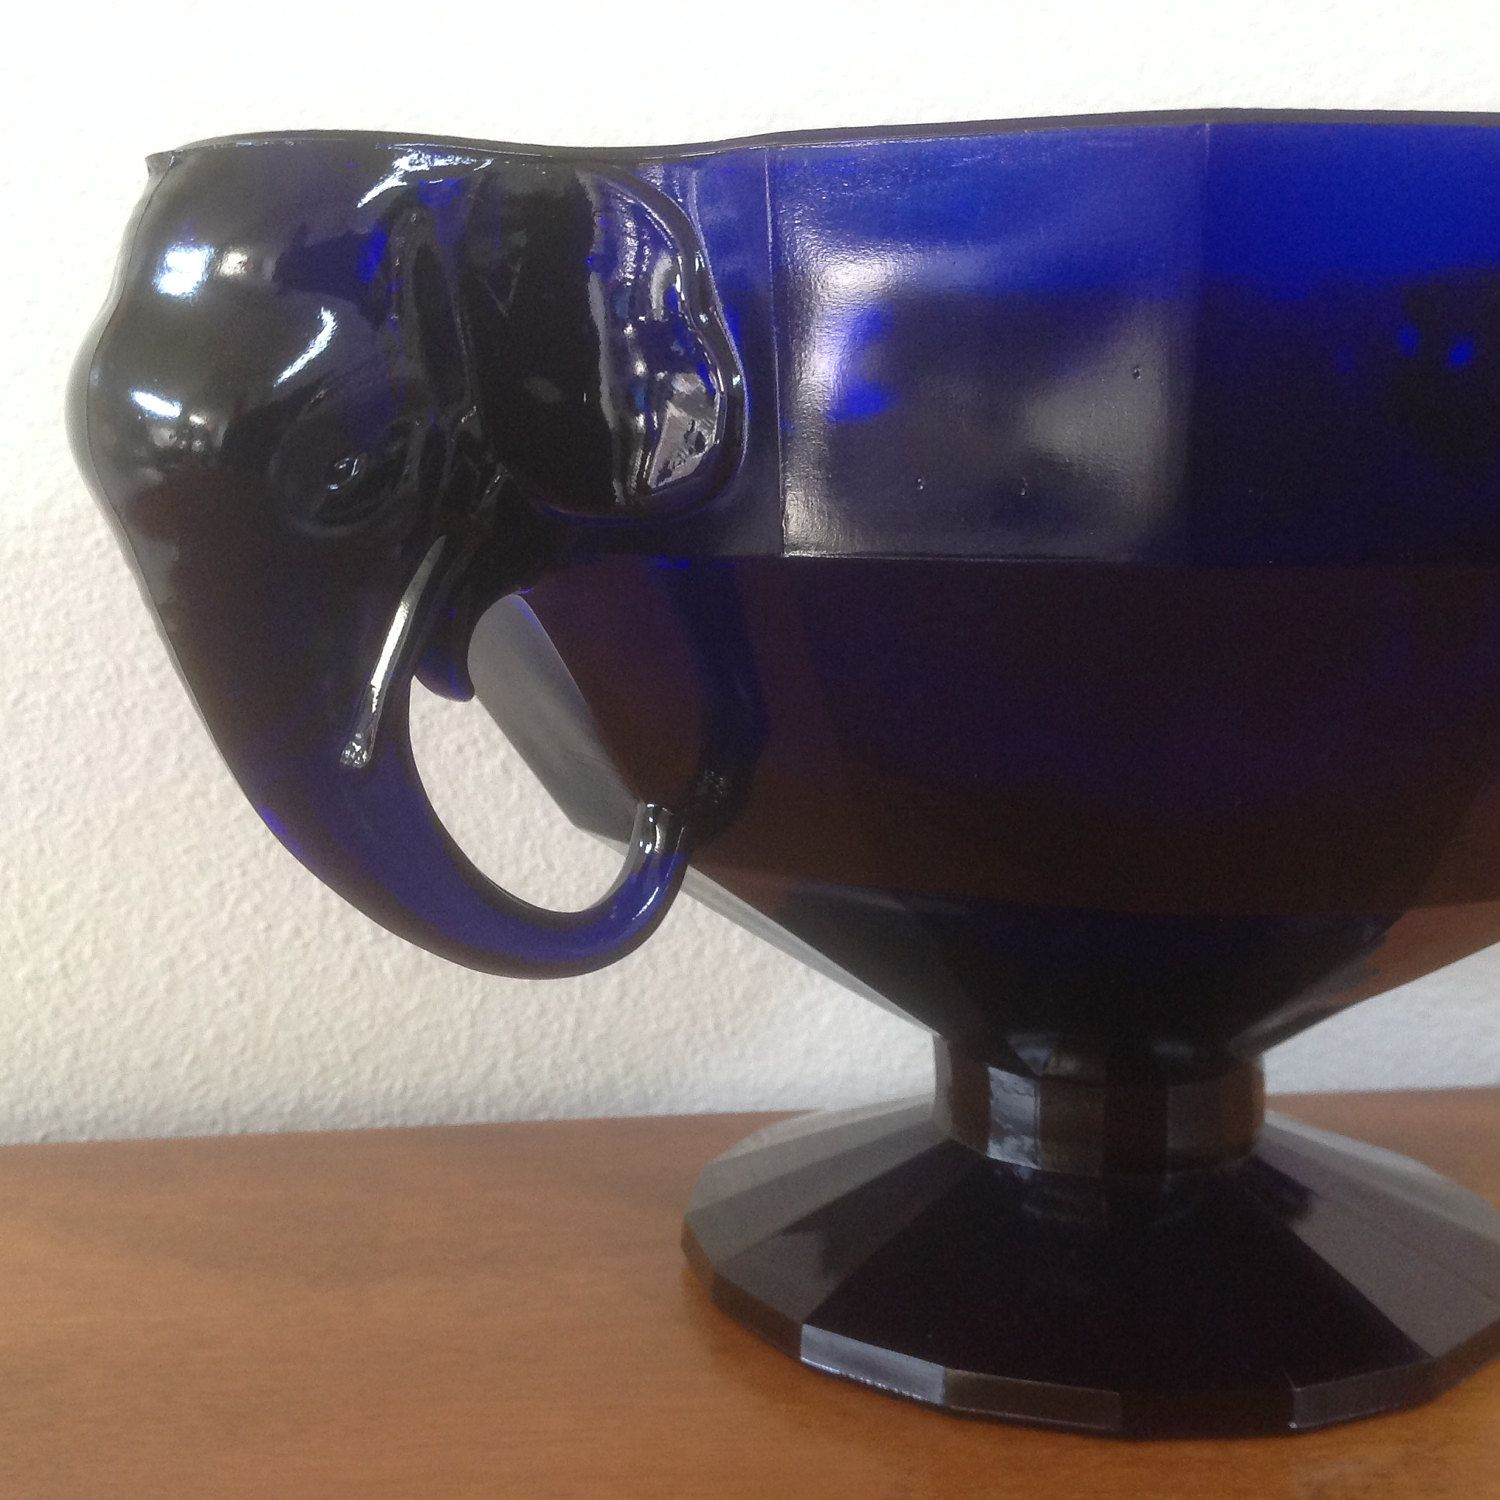 Elephant handled cobalt blue footed console bowl with